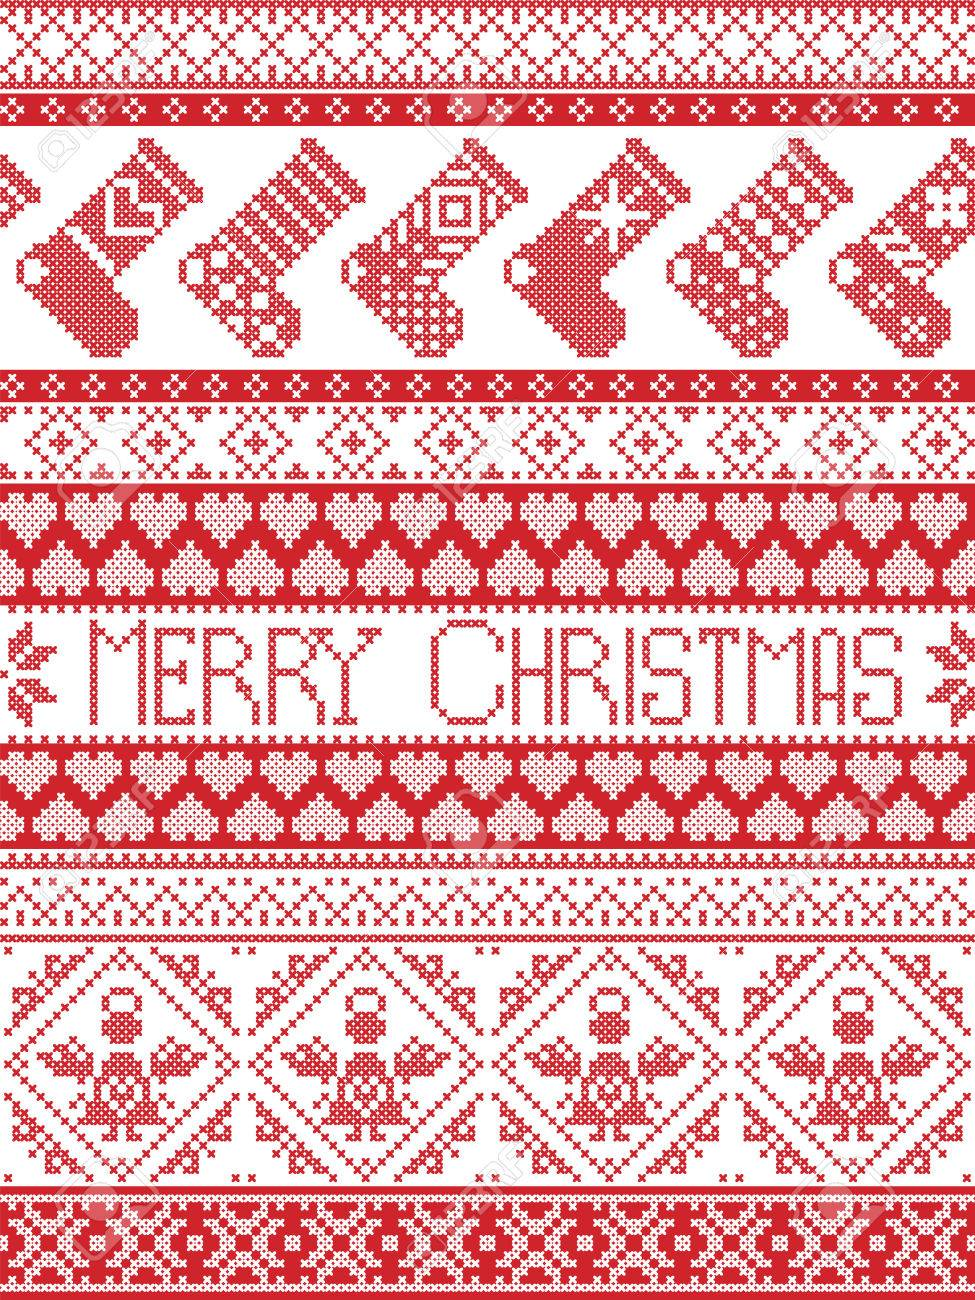 Merry Christmas In Norwegian.Merry Christmas Tall Scandinavian Printed Textile Style And Inspired